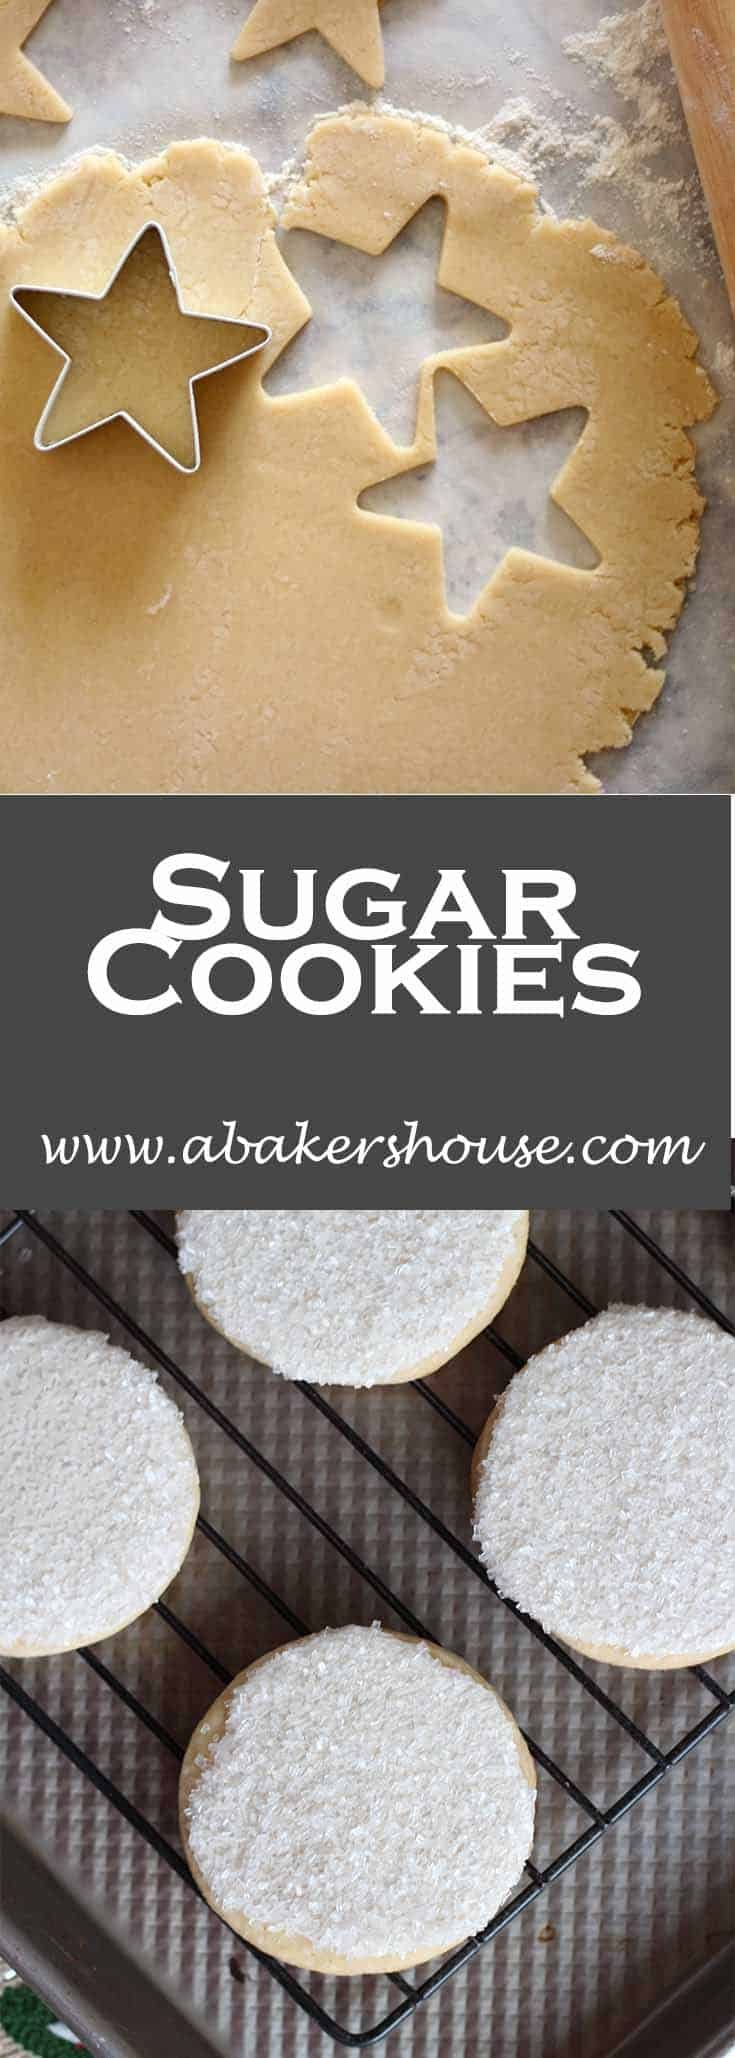 Try icing cookies with royal icing then dipping into sparkling sugar (or sprinkles if you can't find sparkling sugar). This is a quick way to dress up cookies without worrying about a pastry bag. #abakershouse #sugarcookies #wholefoods #cookierecipes